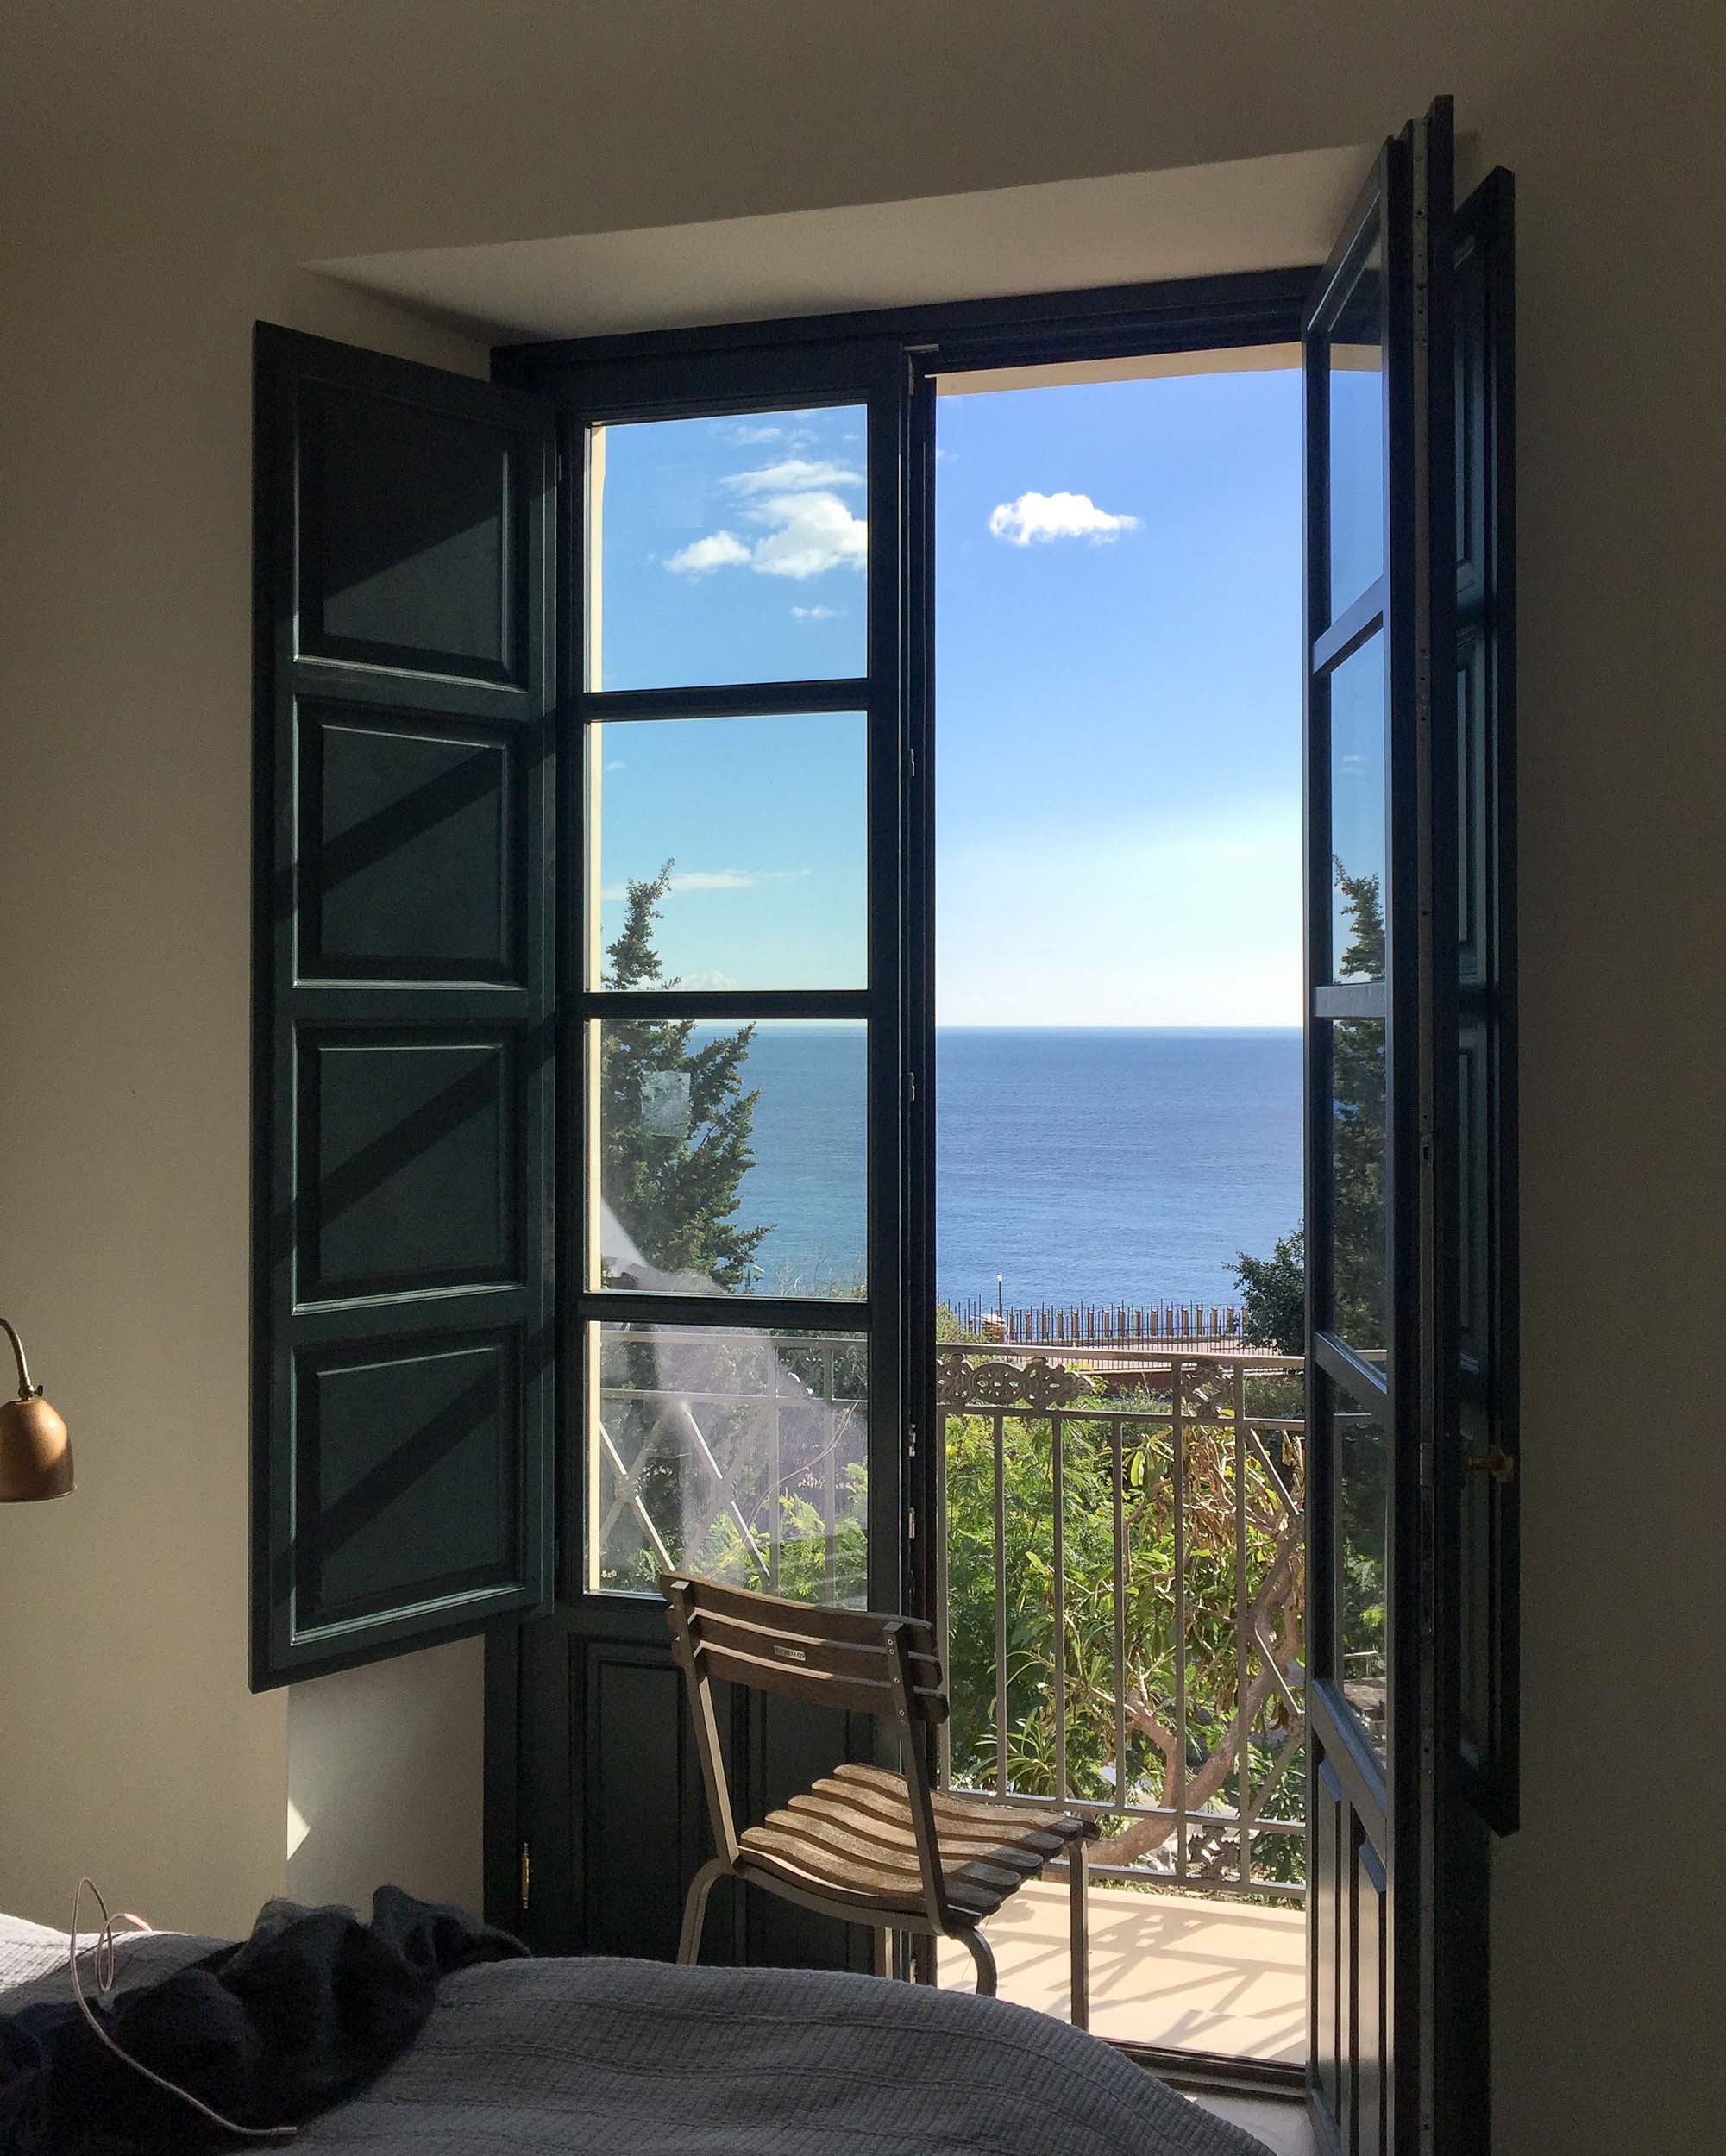 All bedrooms have beautiful sea view and French balconies